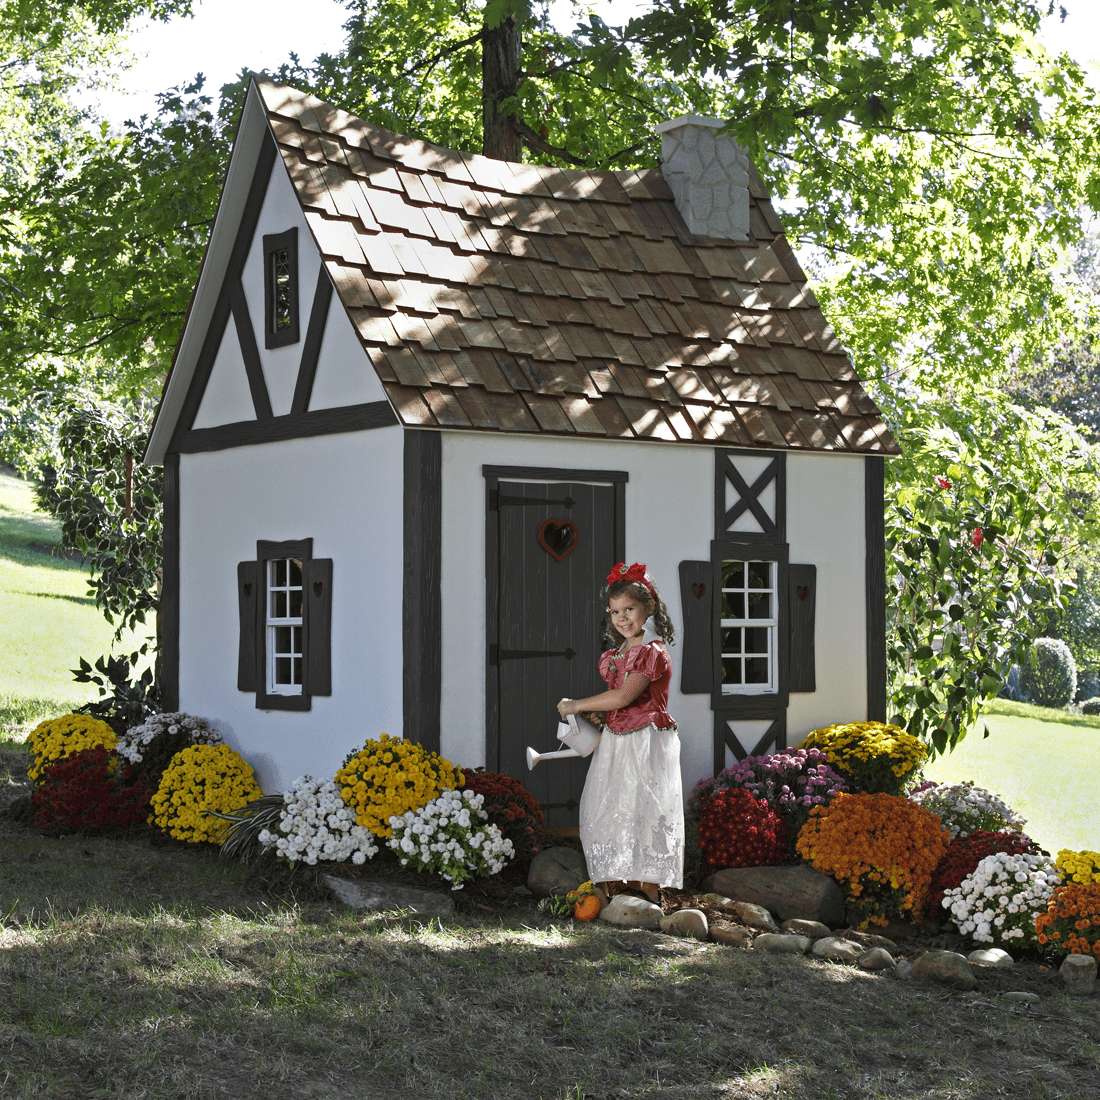 fairytale cottage - Fairy Tale House Plans